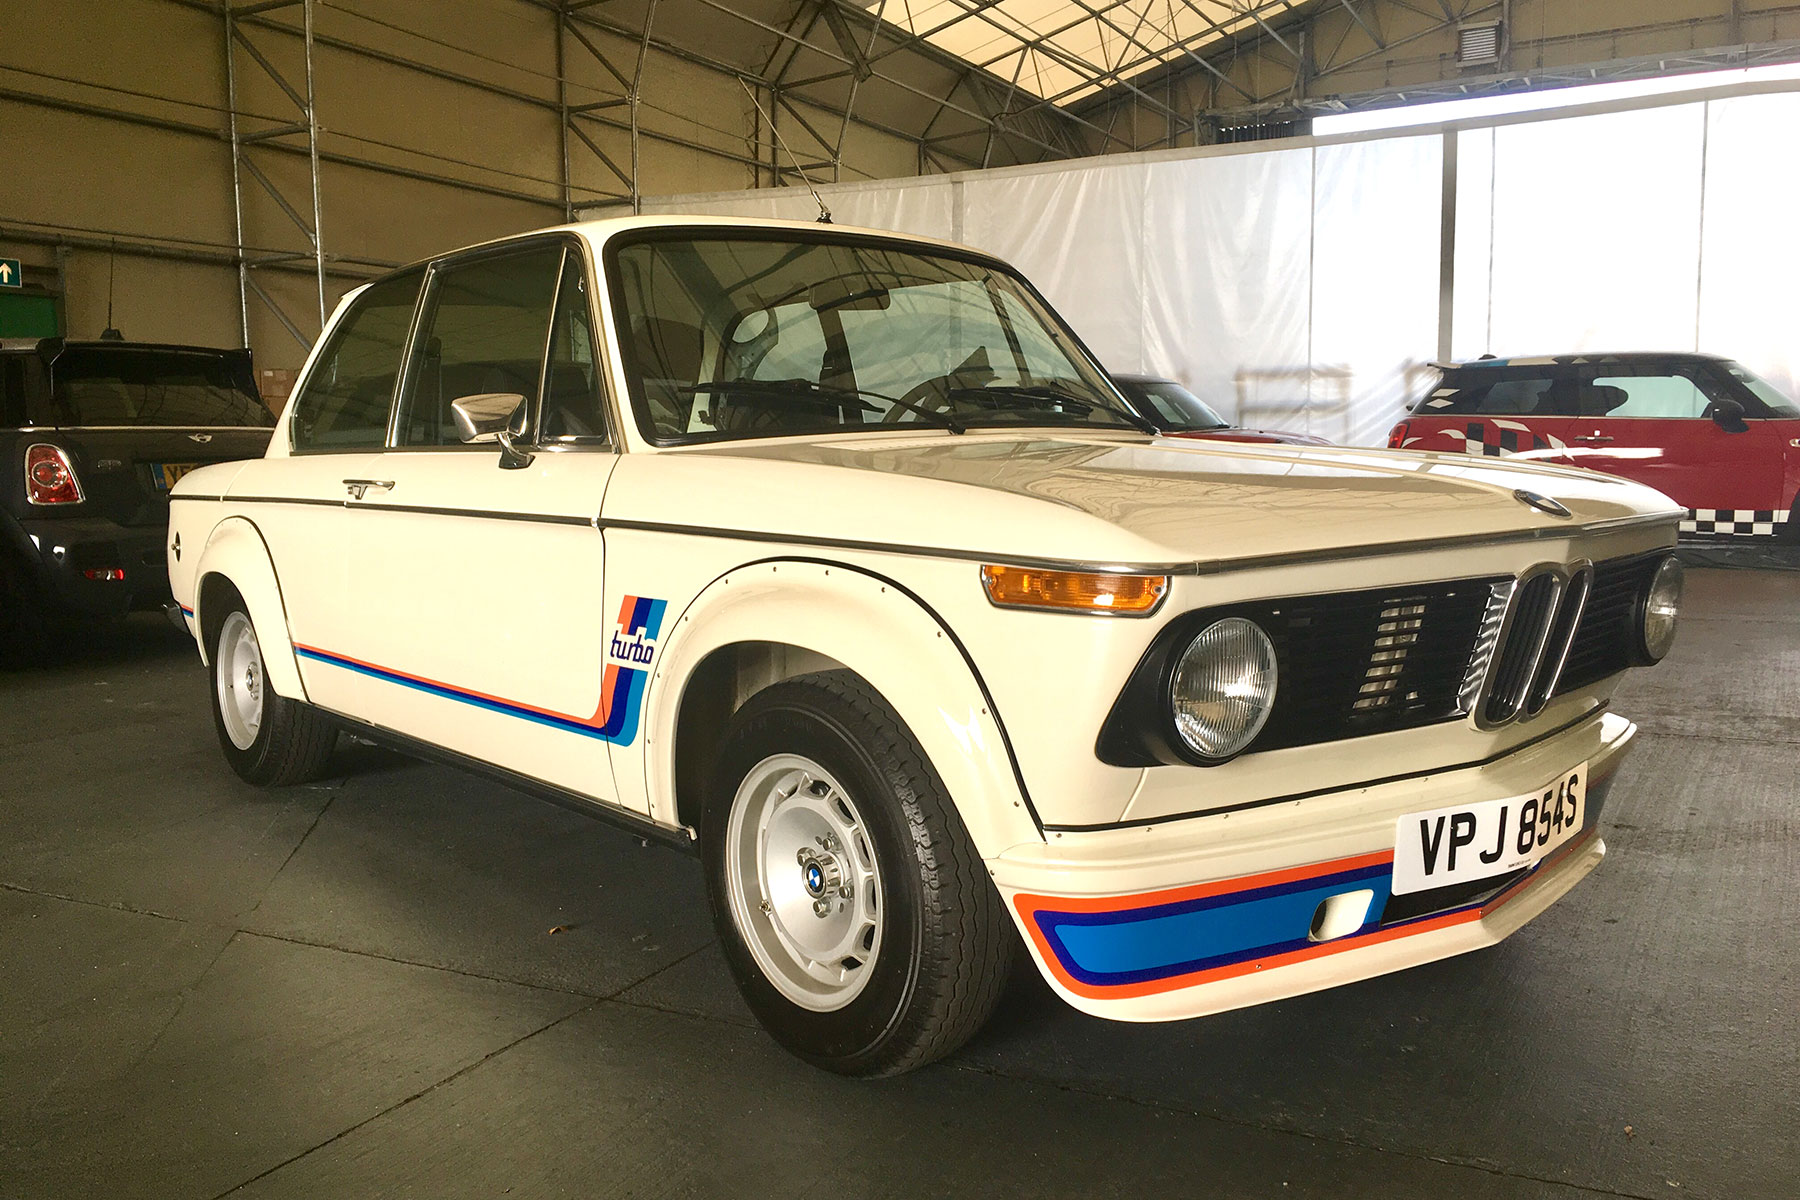 Inside BMW's jaw-dropping heritage car collection